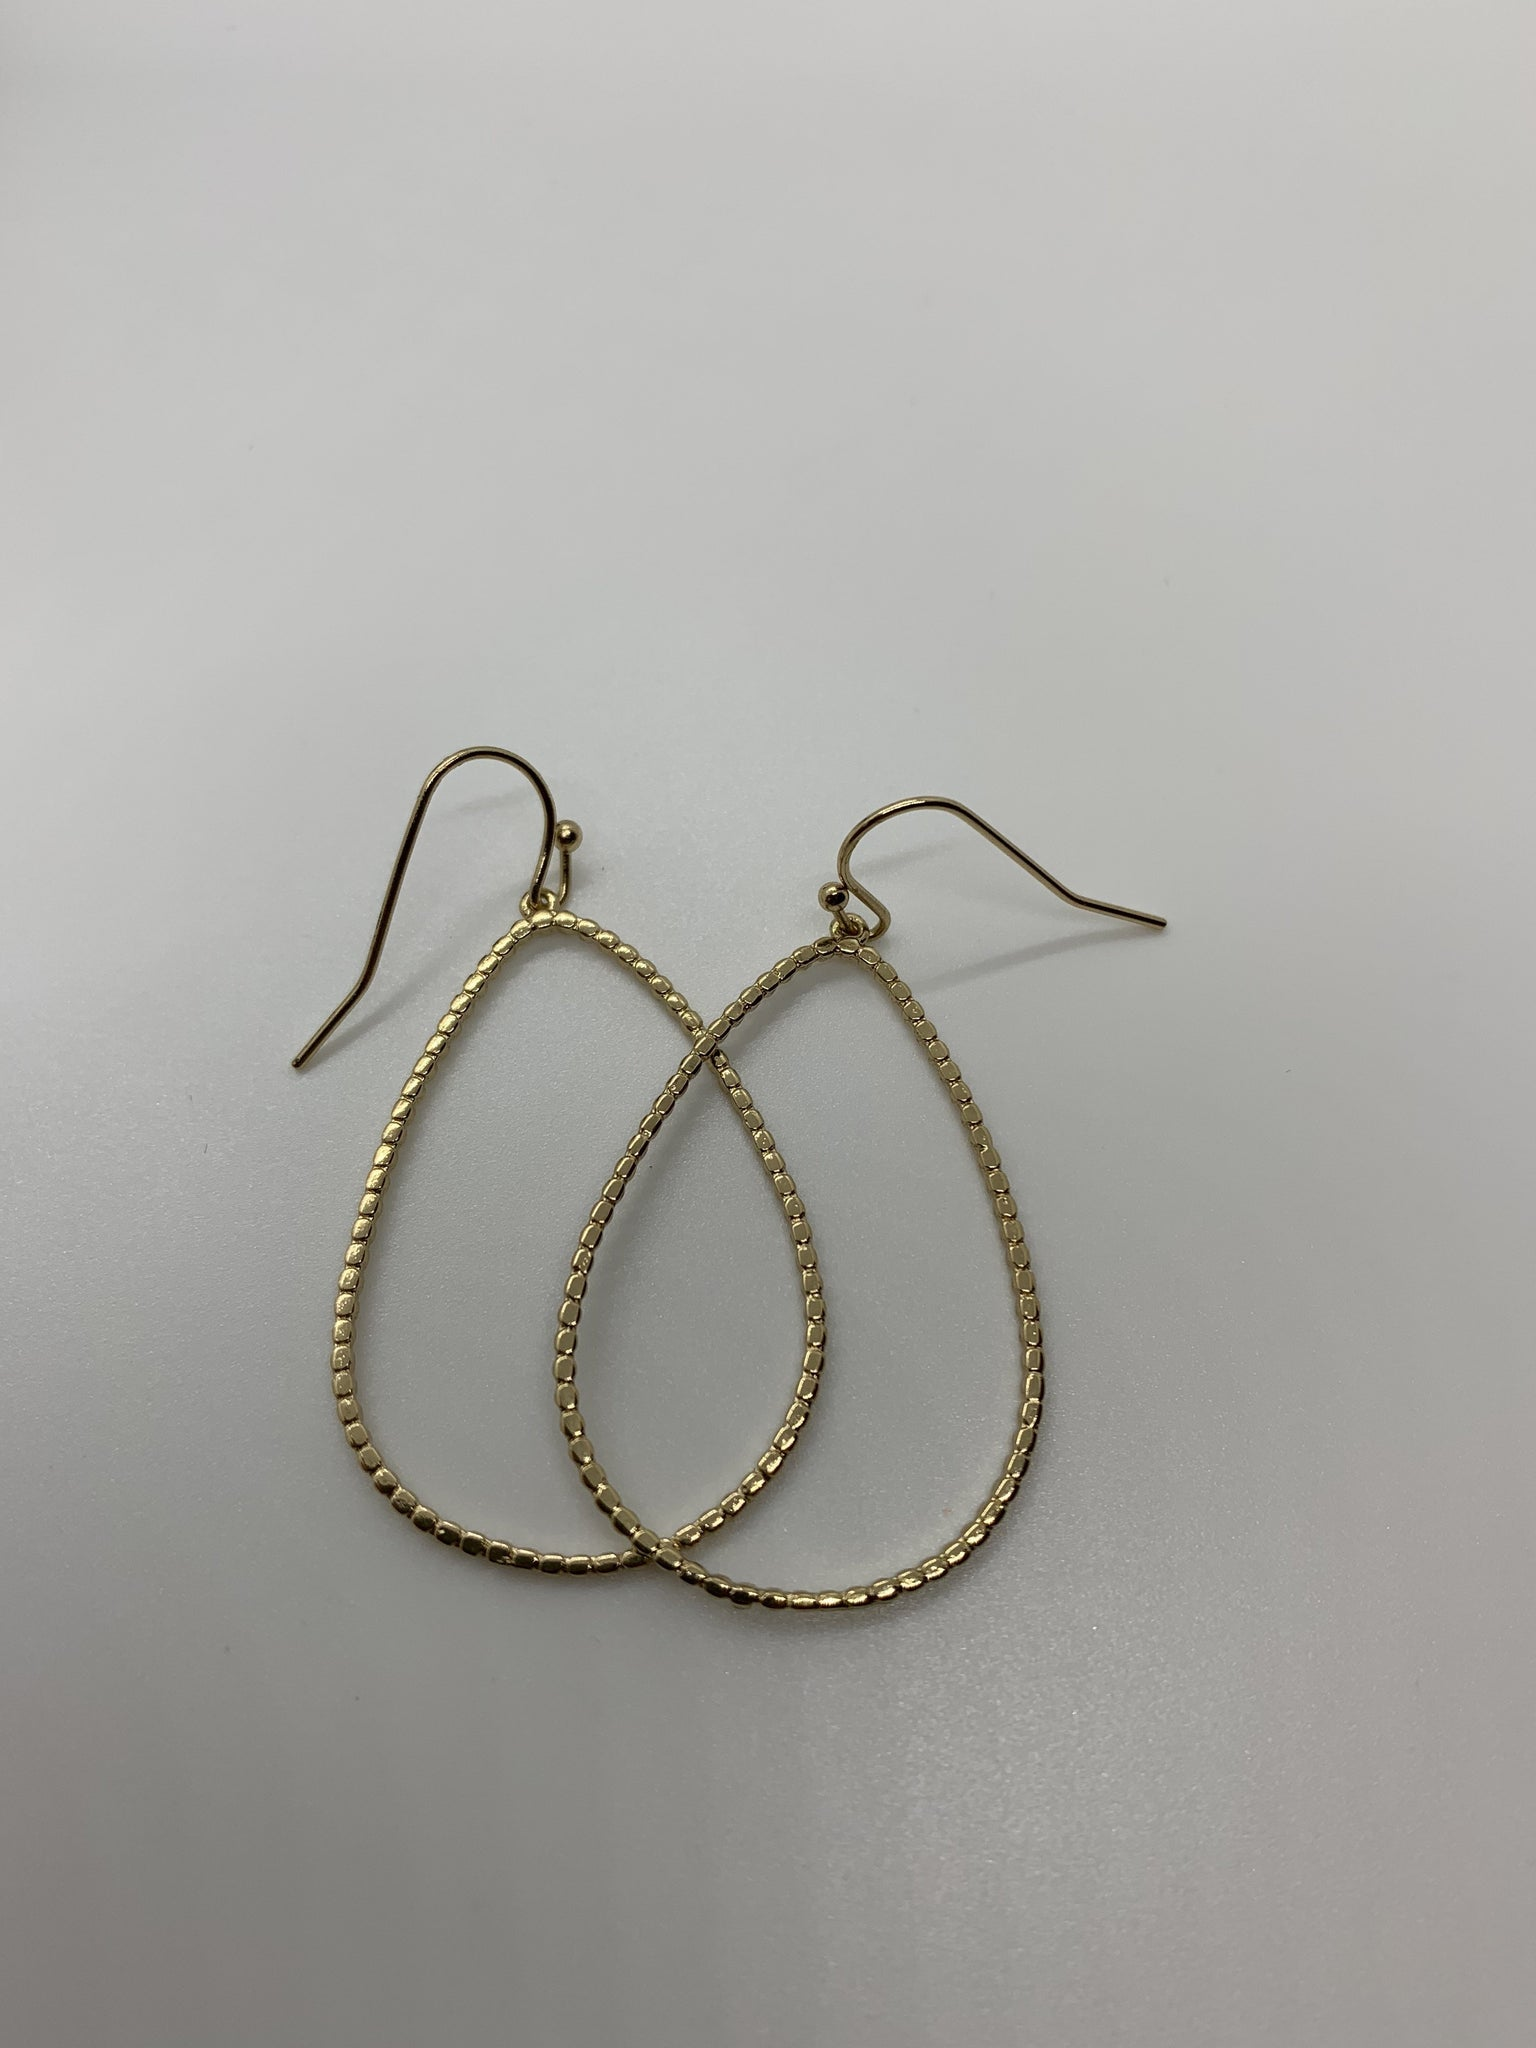 Tear-Drop Earrings